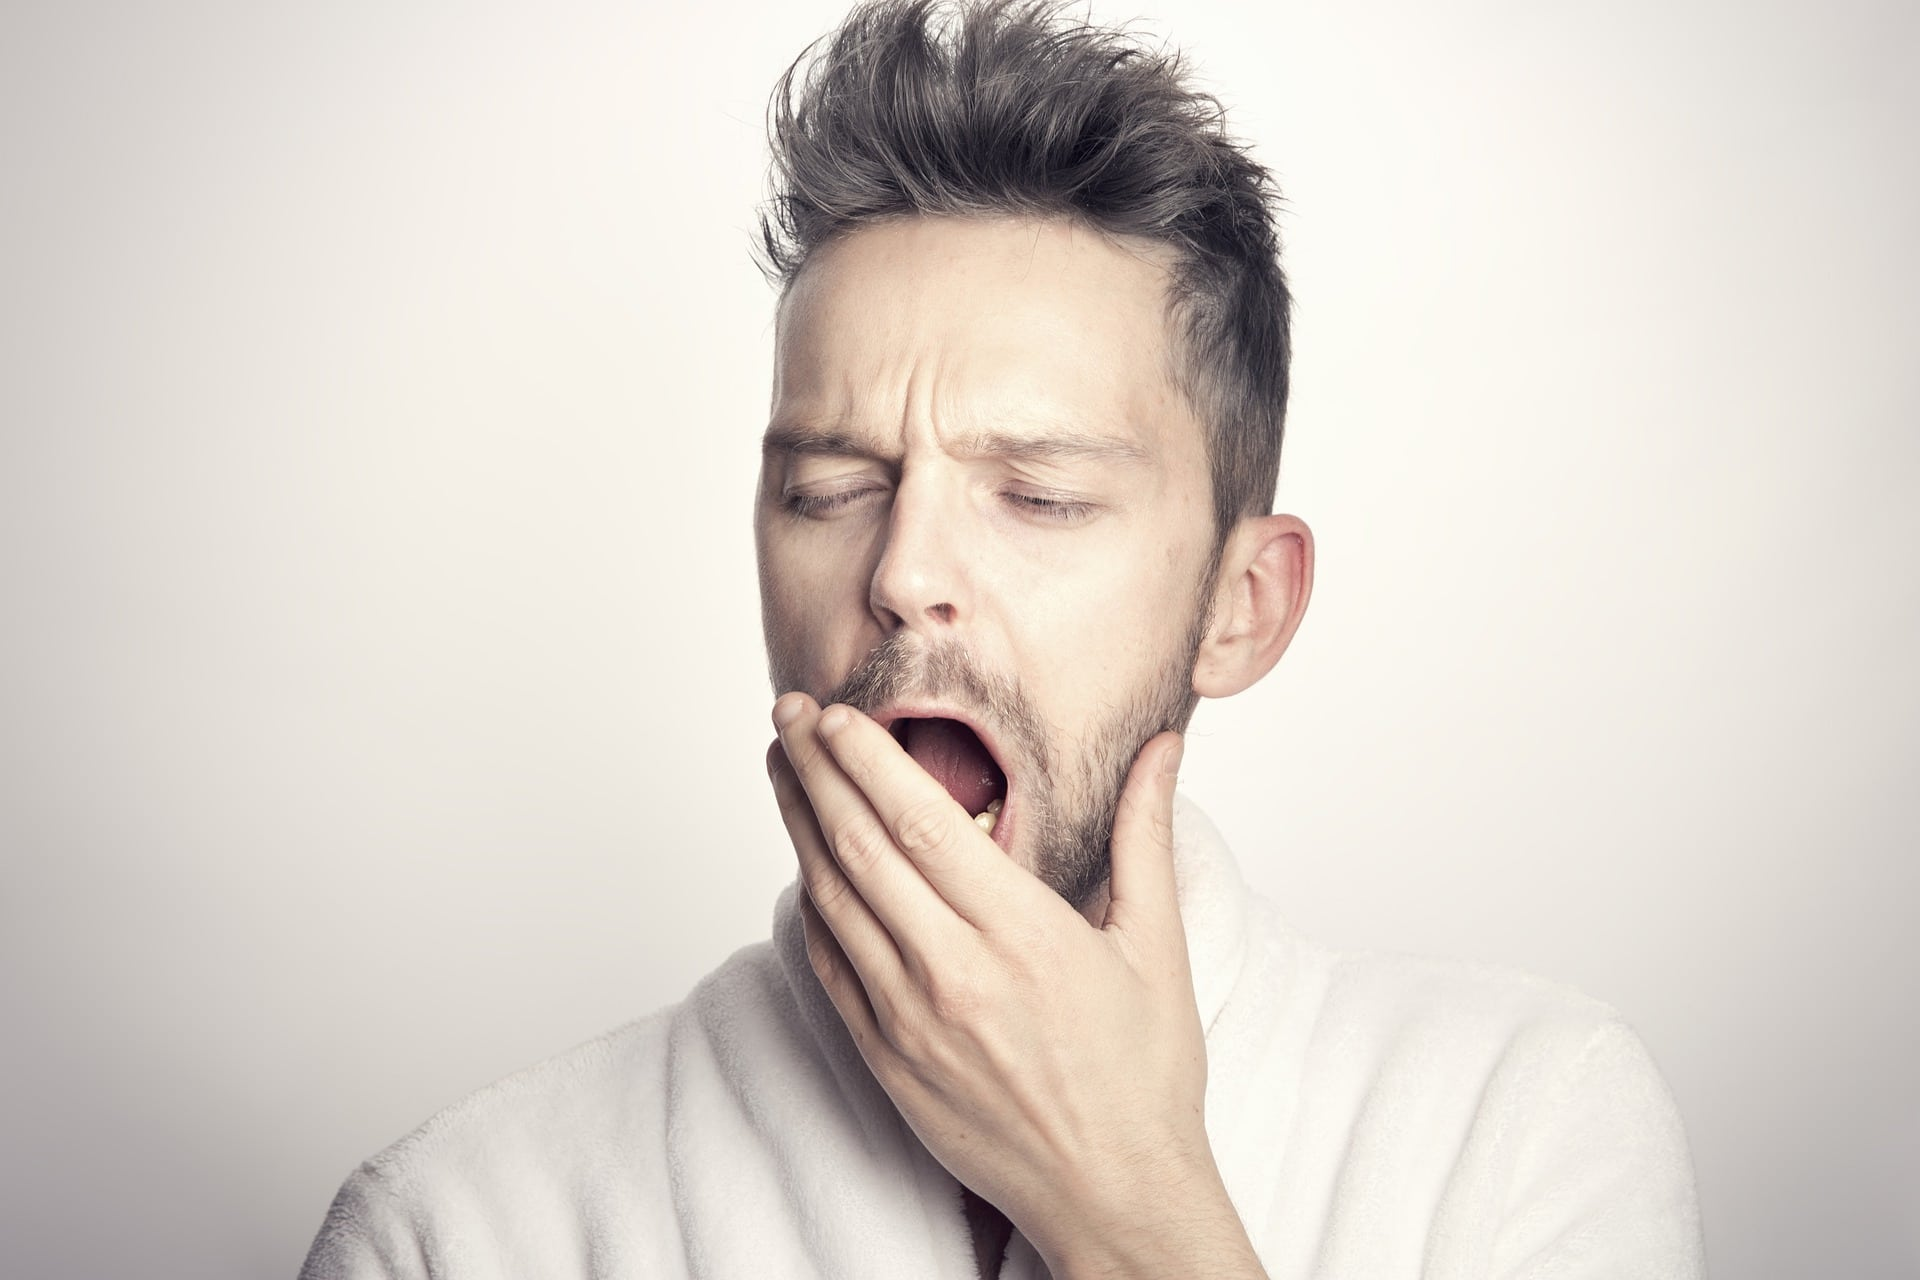 Man yawning, his hand partially covering his mouth